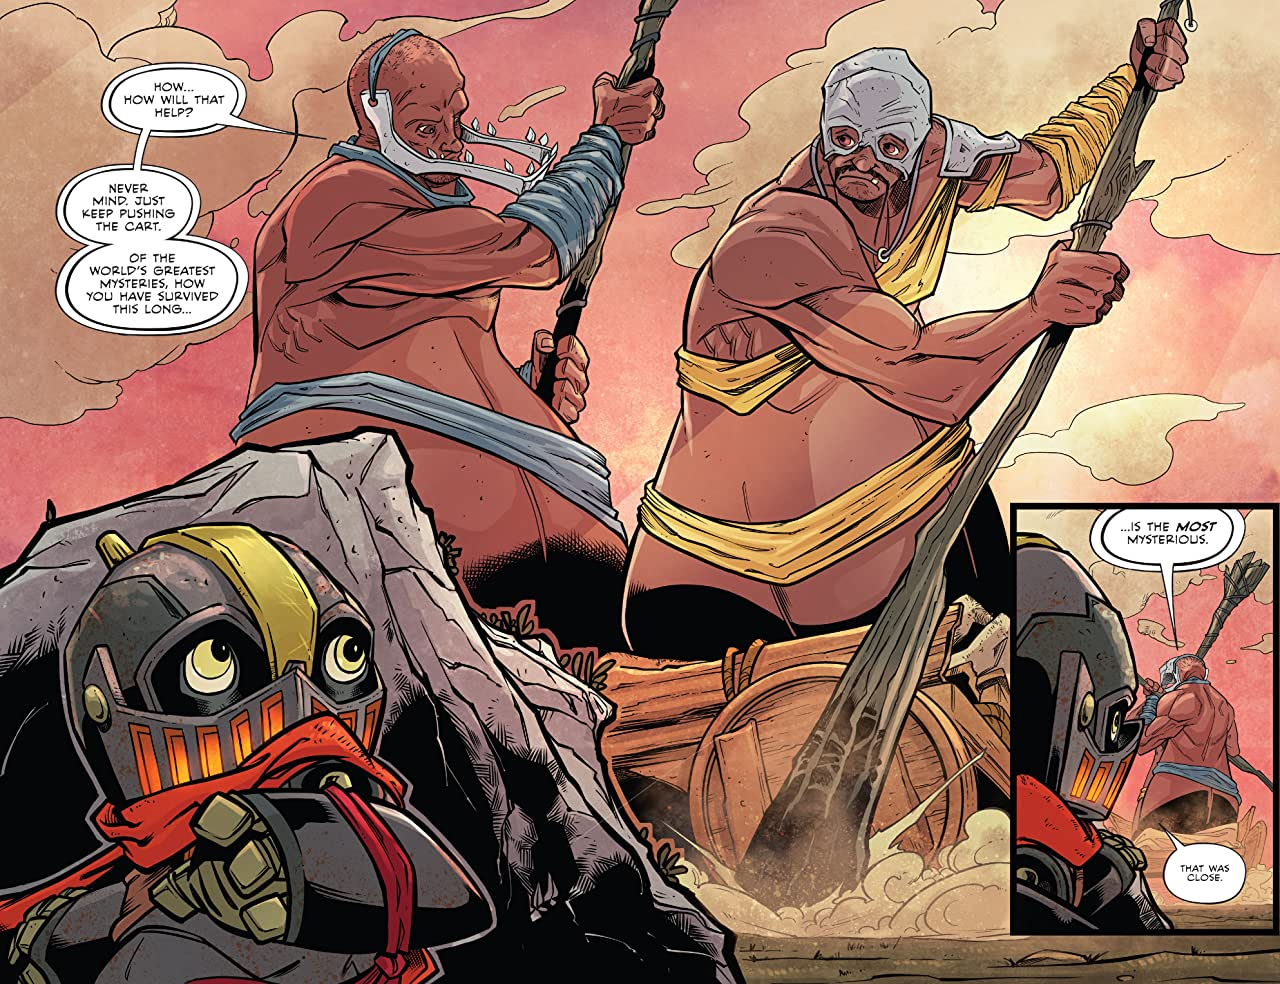 Canto II: The Hollow Men #4 (of 5)